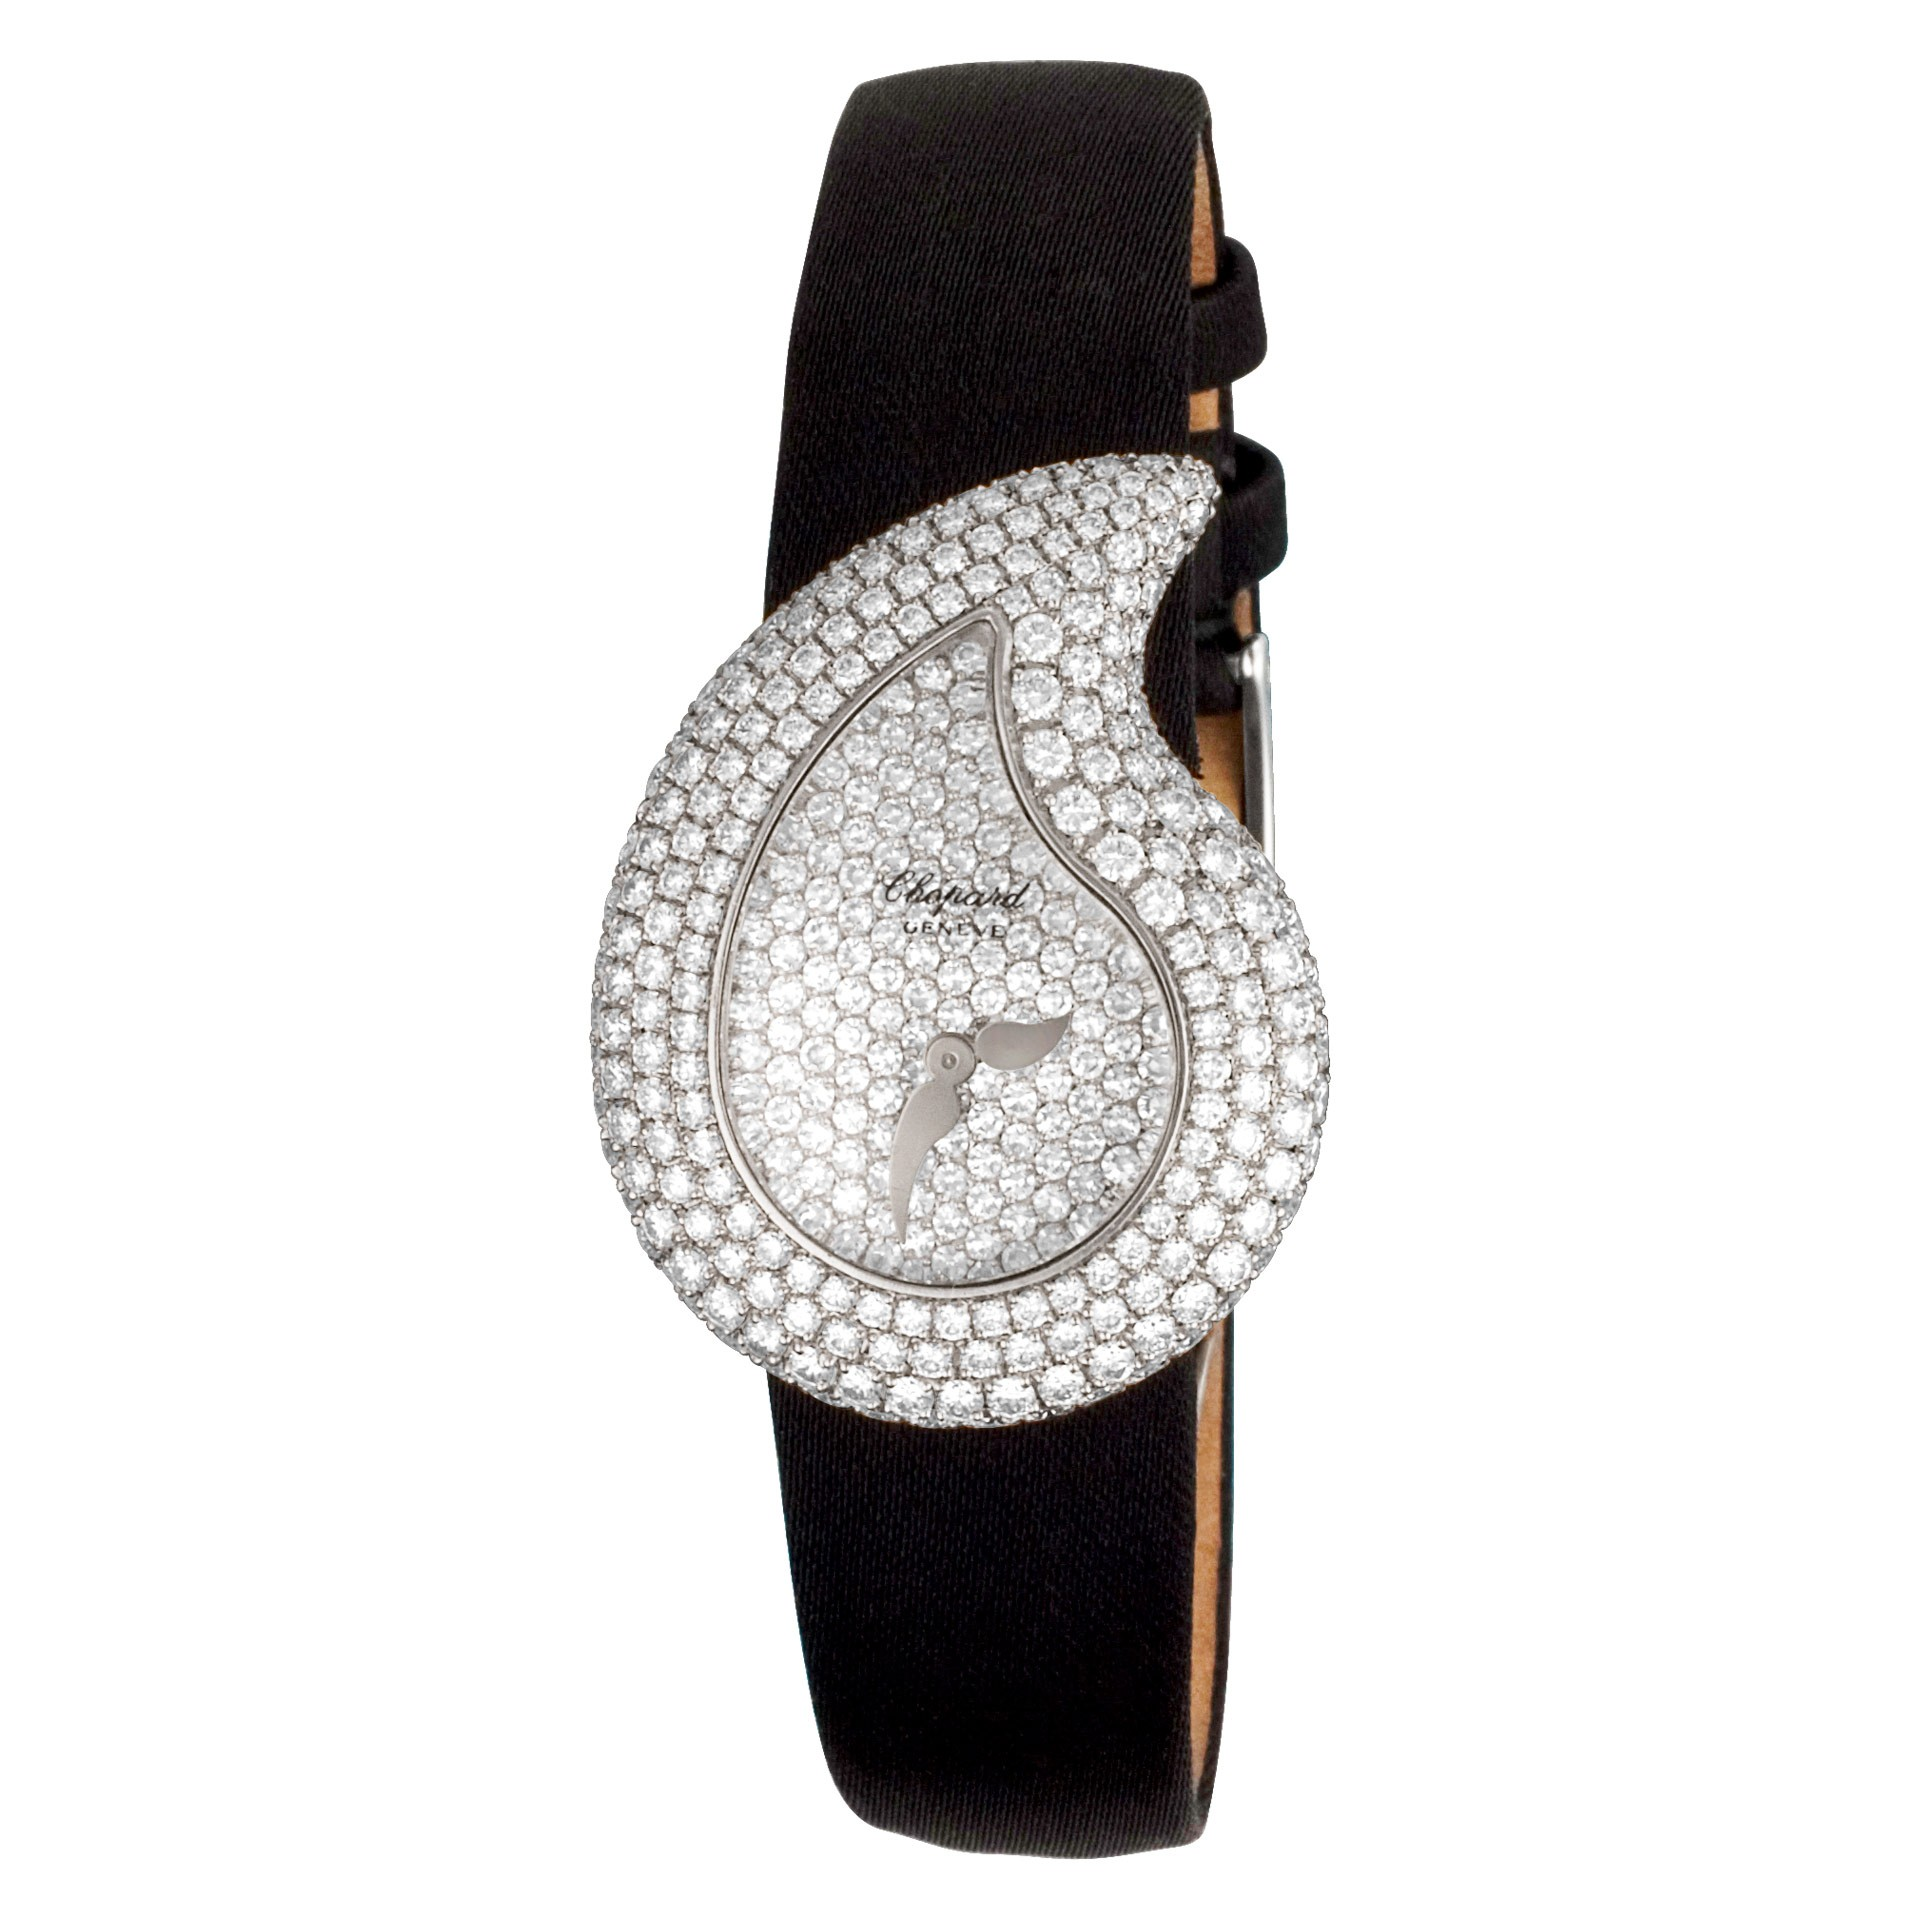 18k white gold Chopard Casmir